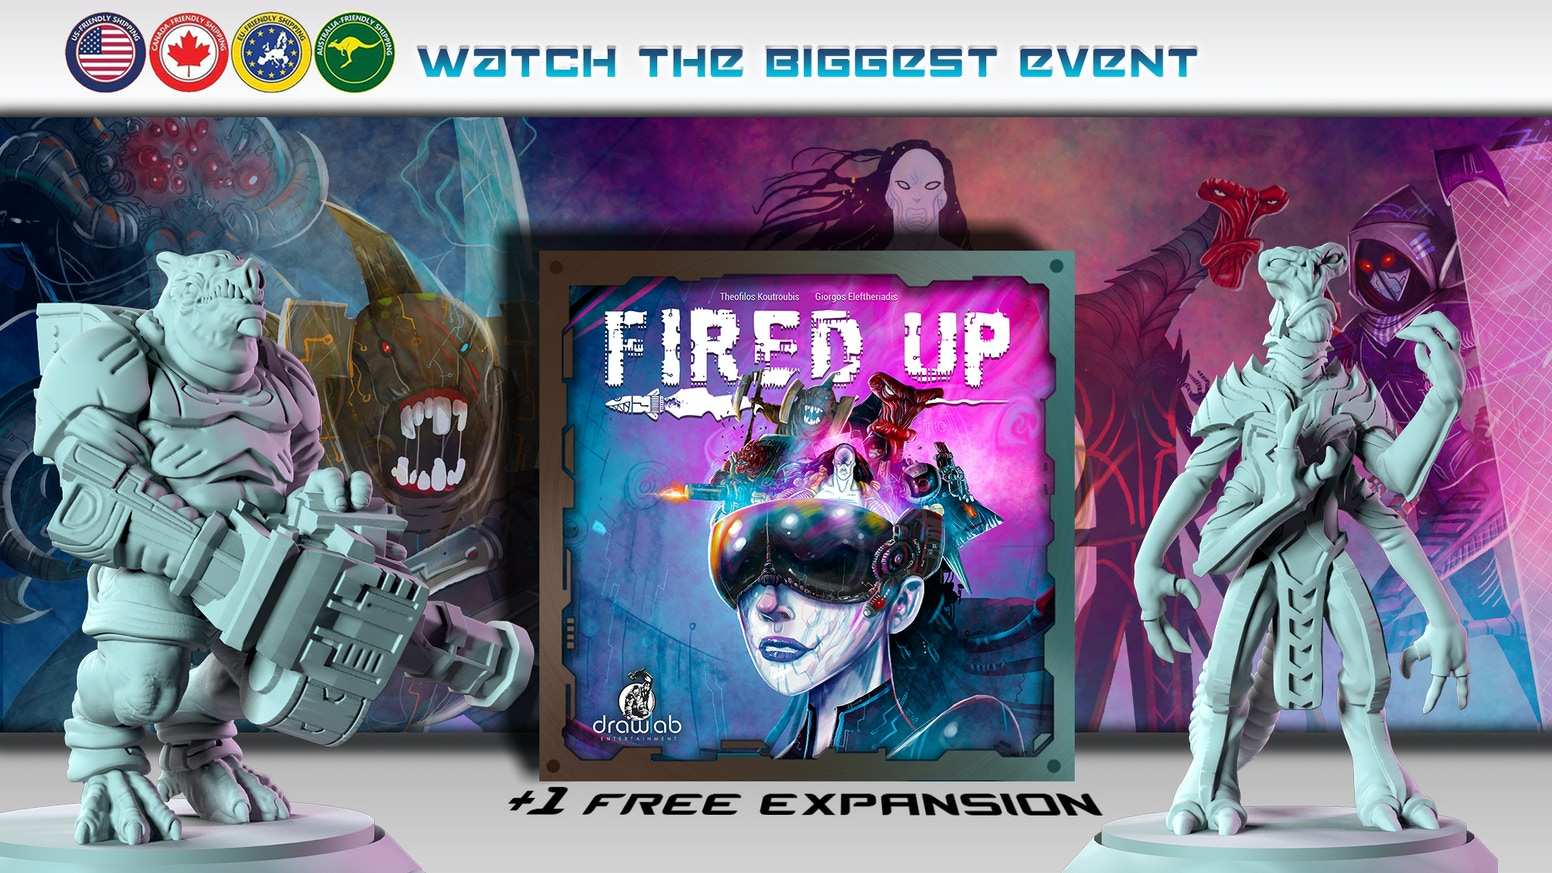 Join a cyberpunk universe and play as the audience. Win points with your secret objectives. A free expansion and Game Trayz included.